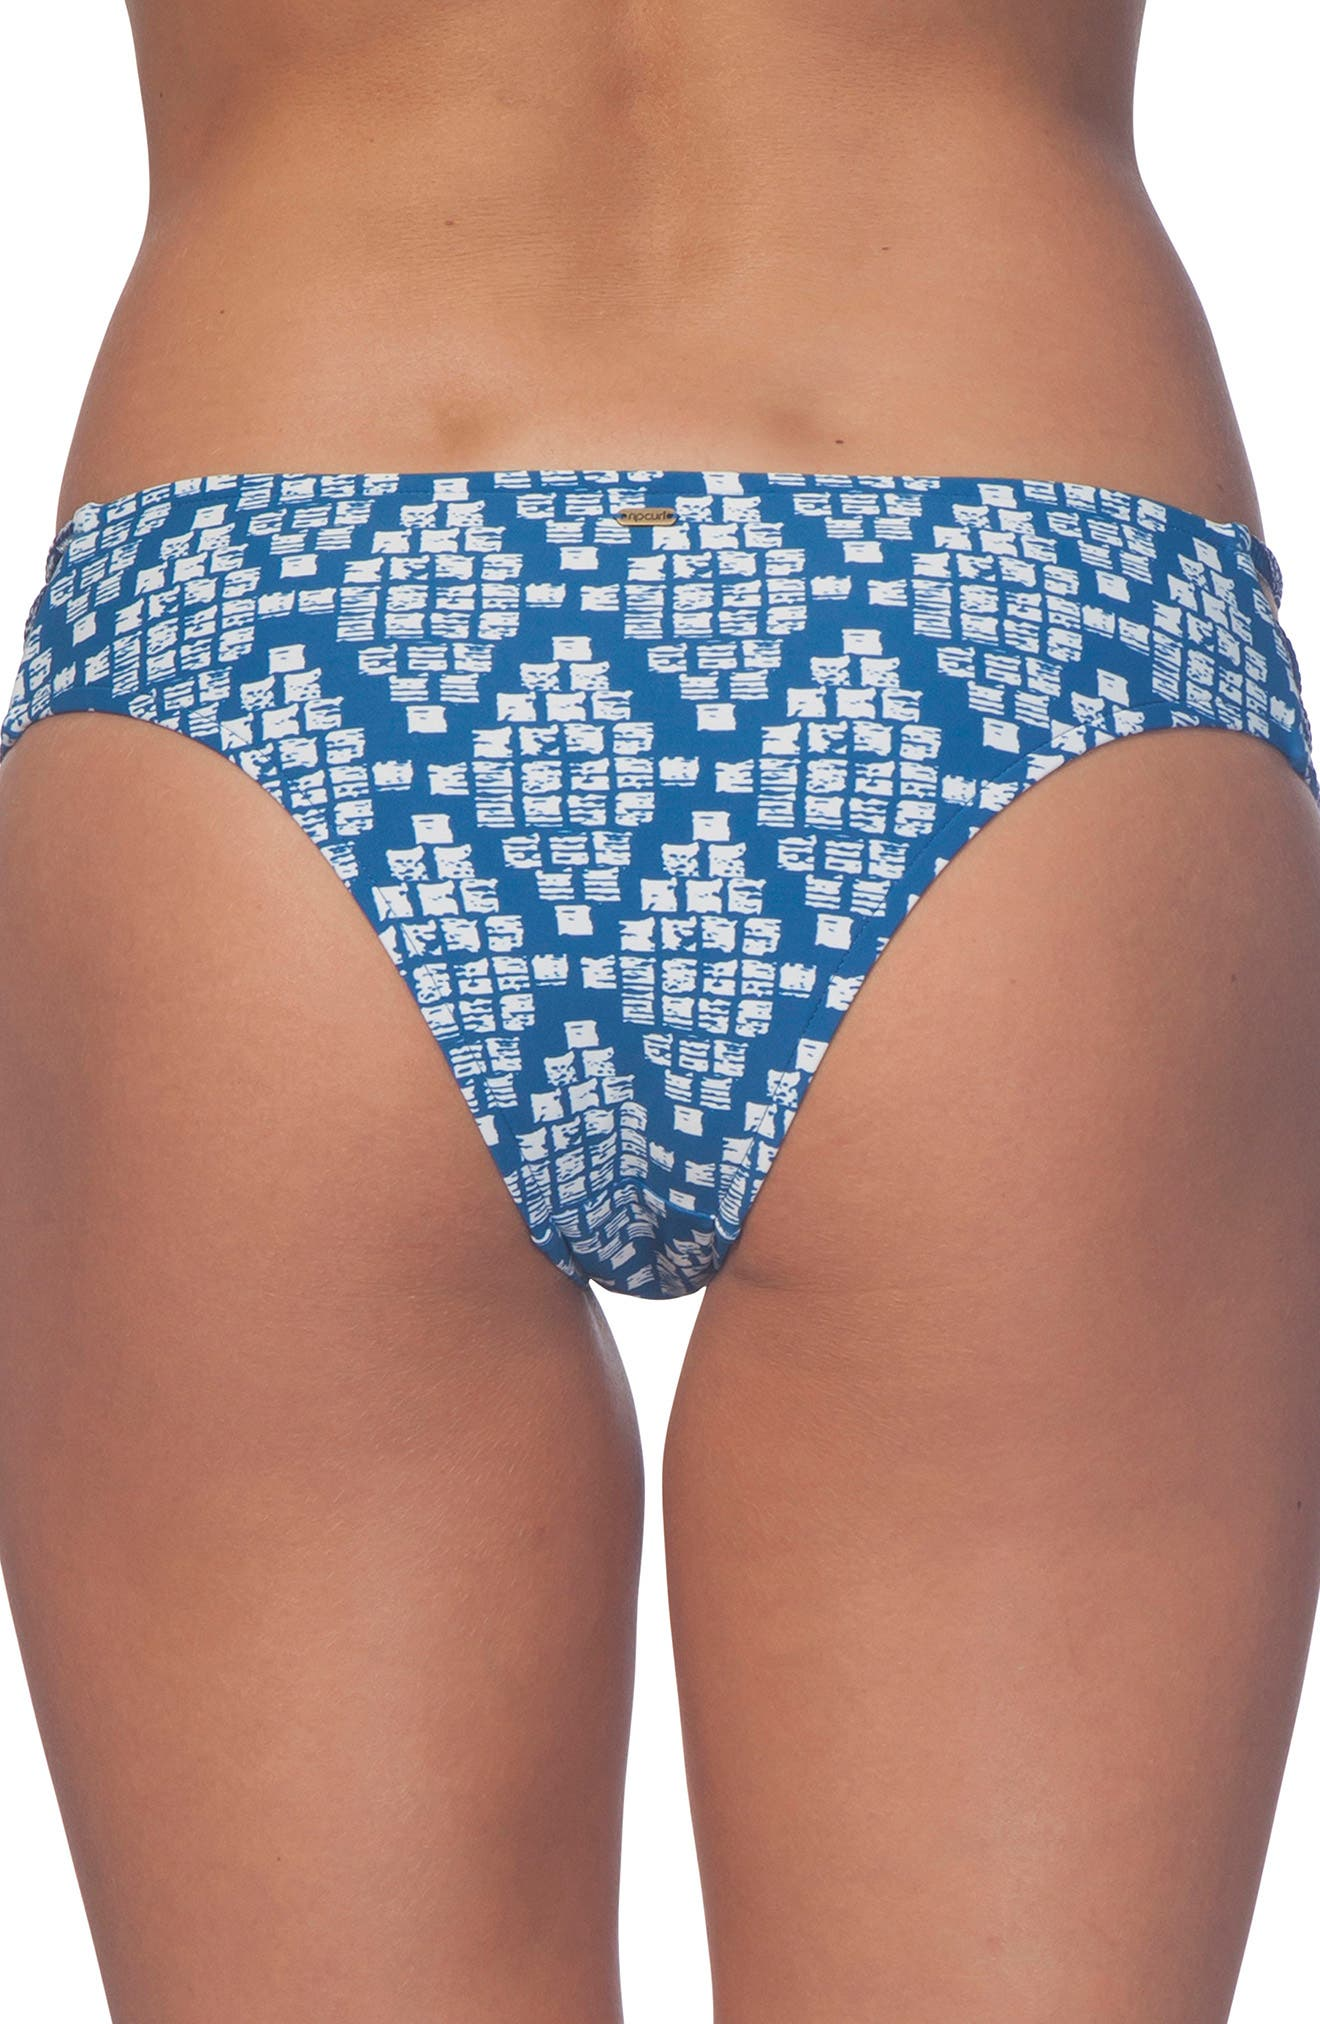 South Winds Luxe Hipster Bikini Bottoms,                             Alternate thumbnail 2, color,                             Blue